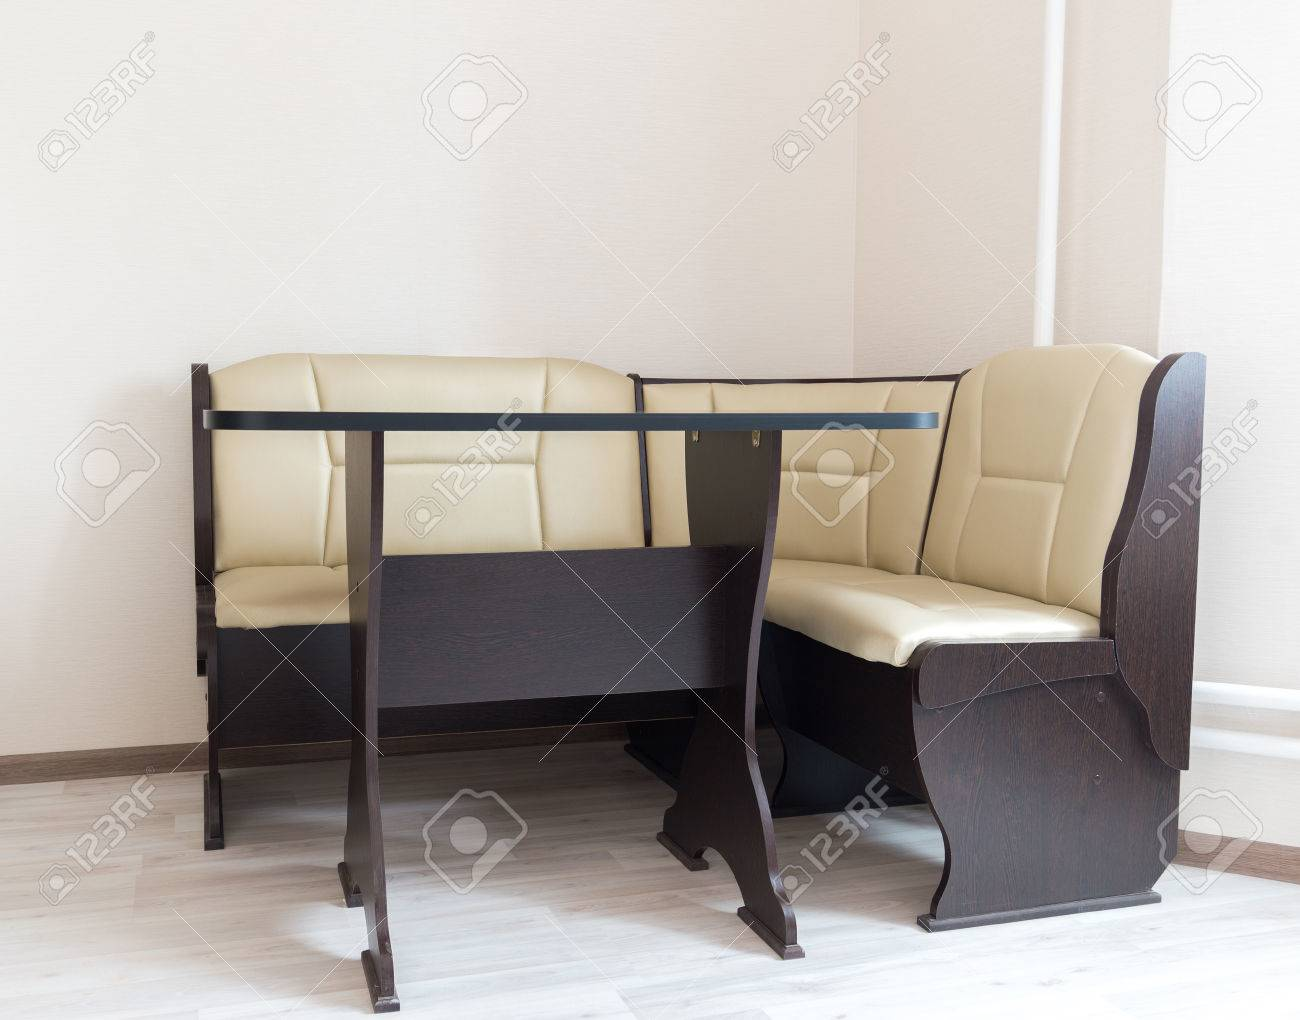 Kitchen Corner Sofa And Table In The Interior Stock Photo Picture And Royalty Free Image Image 77904815